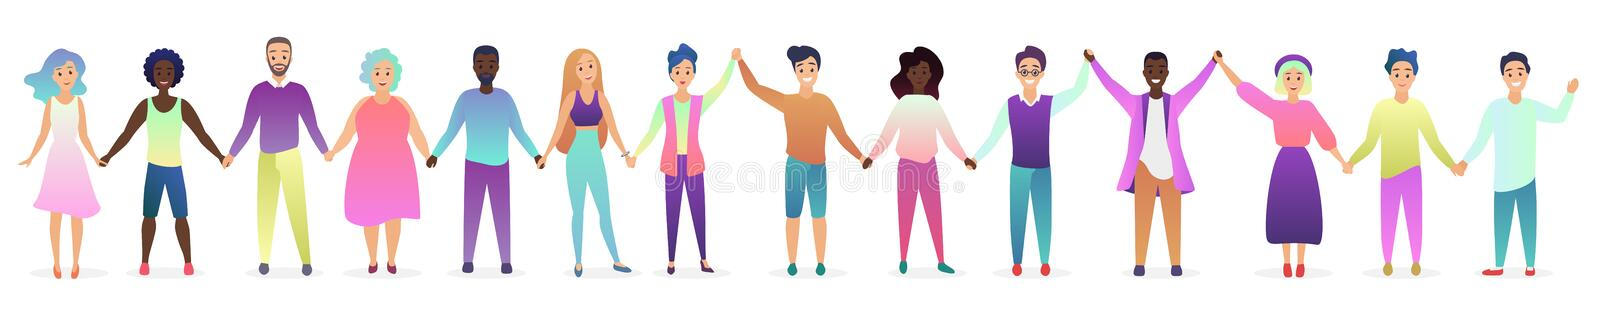 Smiling and happy male and female people holding hands. Human friendship concept. vector illustration